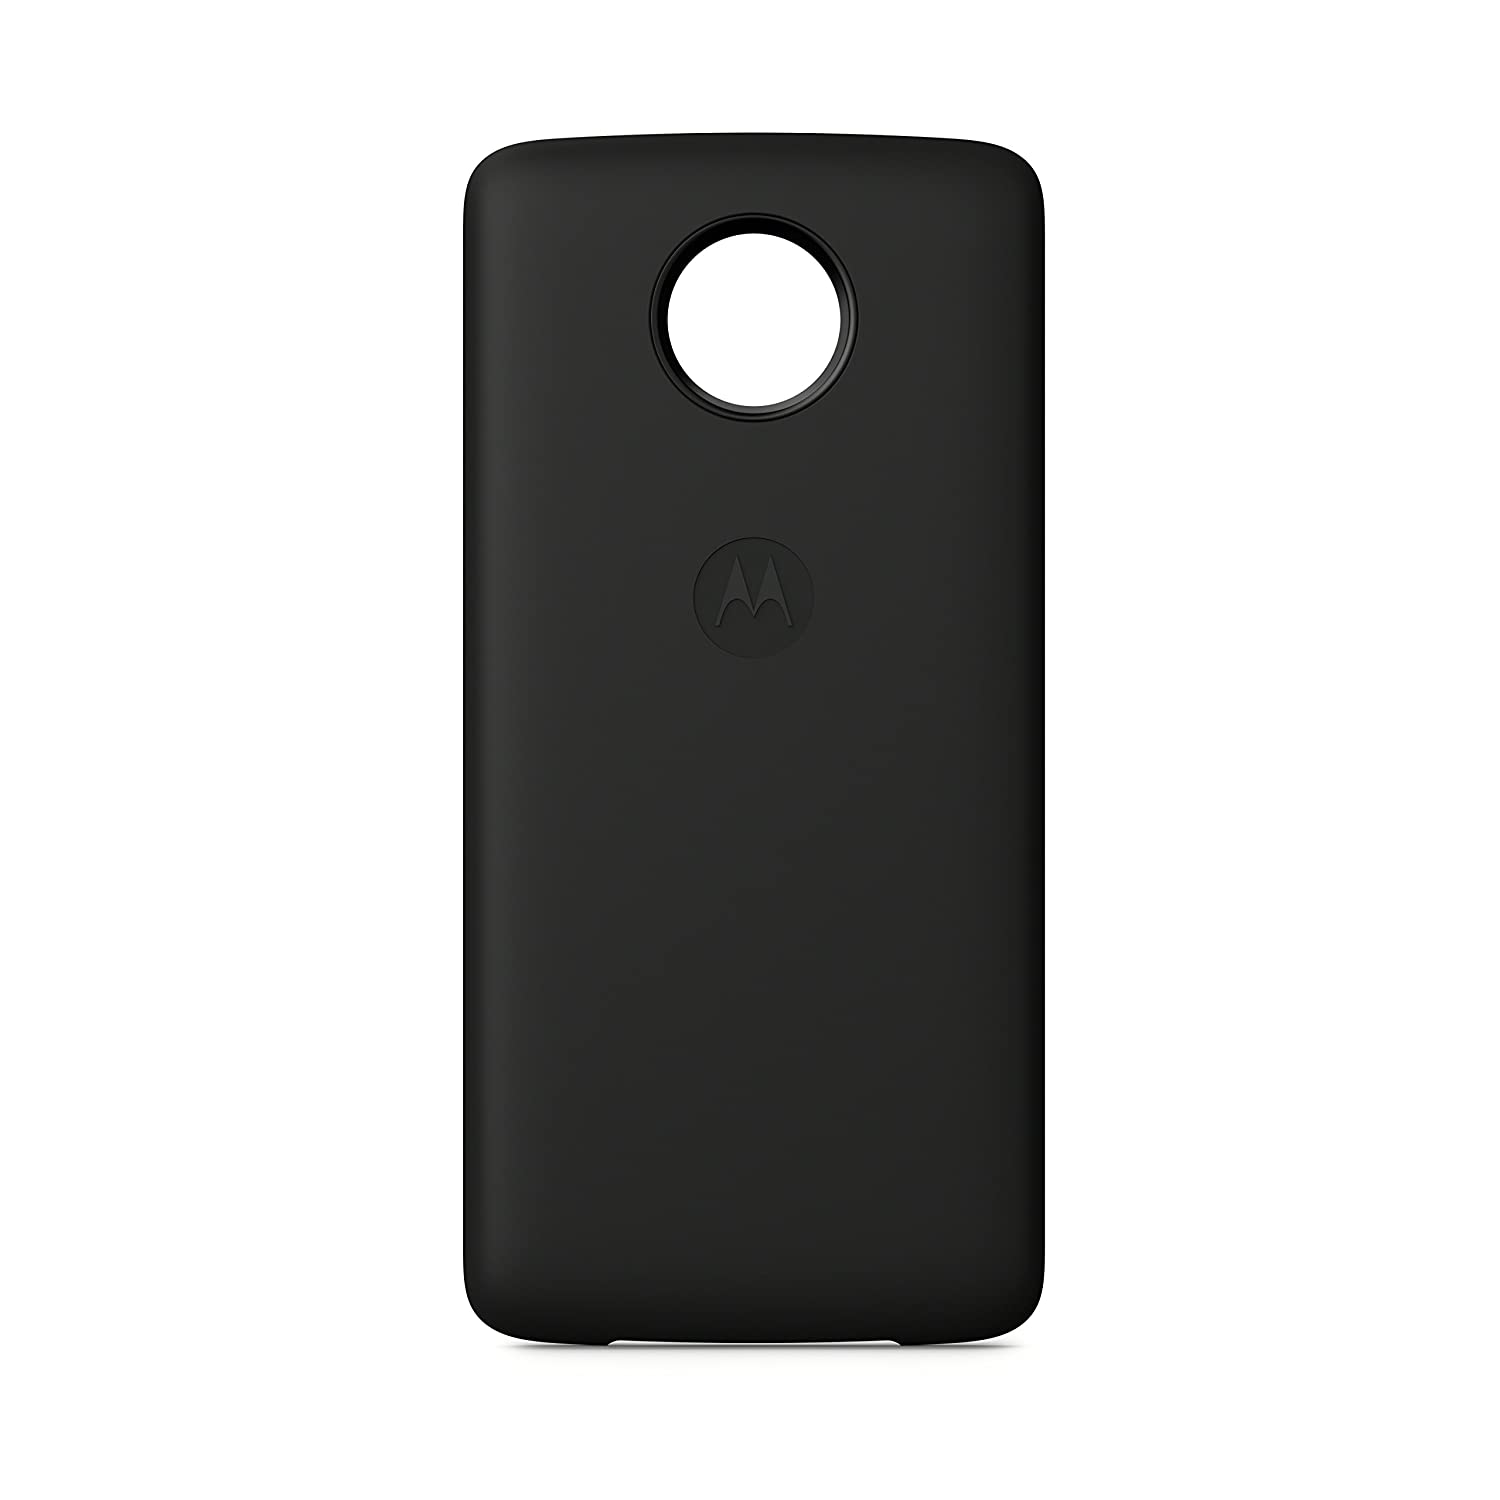 new arrival 9044d f7481 Motorola Battery Case for Moto Z - Black